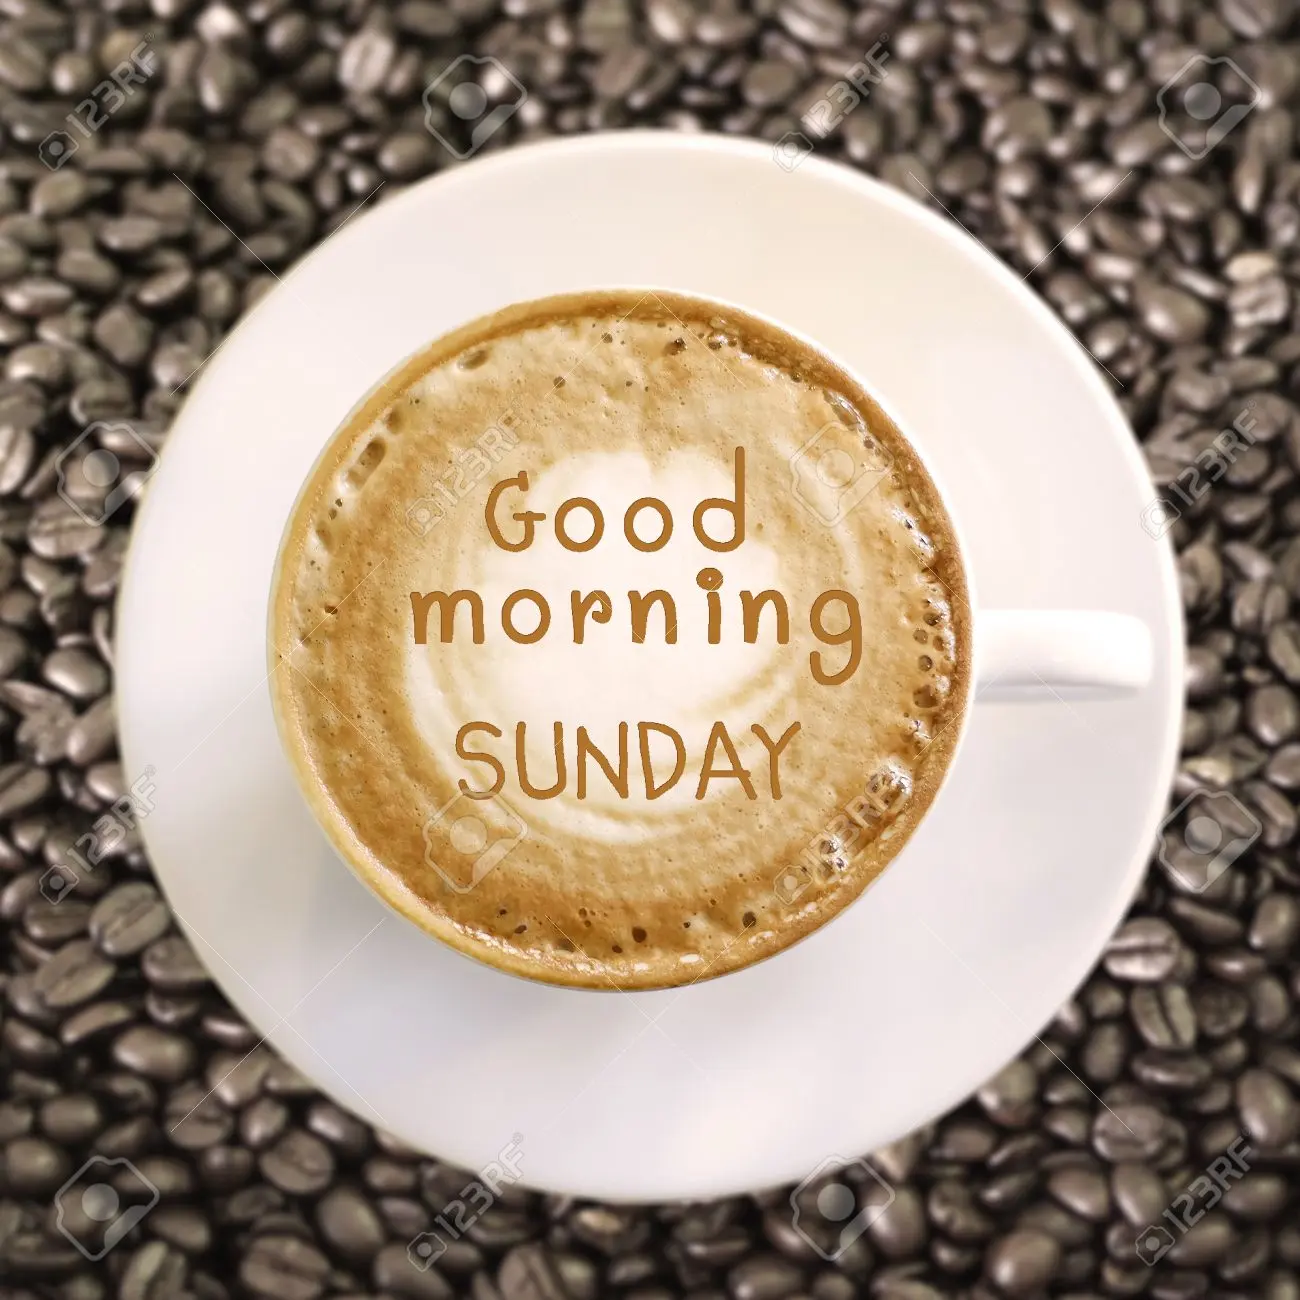 Good Morning Sunday On Hot Coffee Background Stock Photo, Picture ... #sundayCoffee